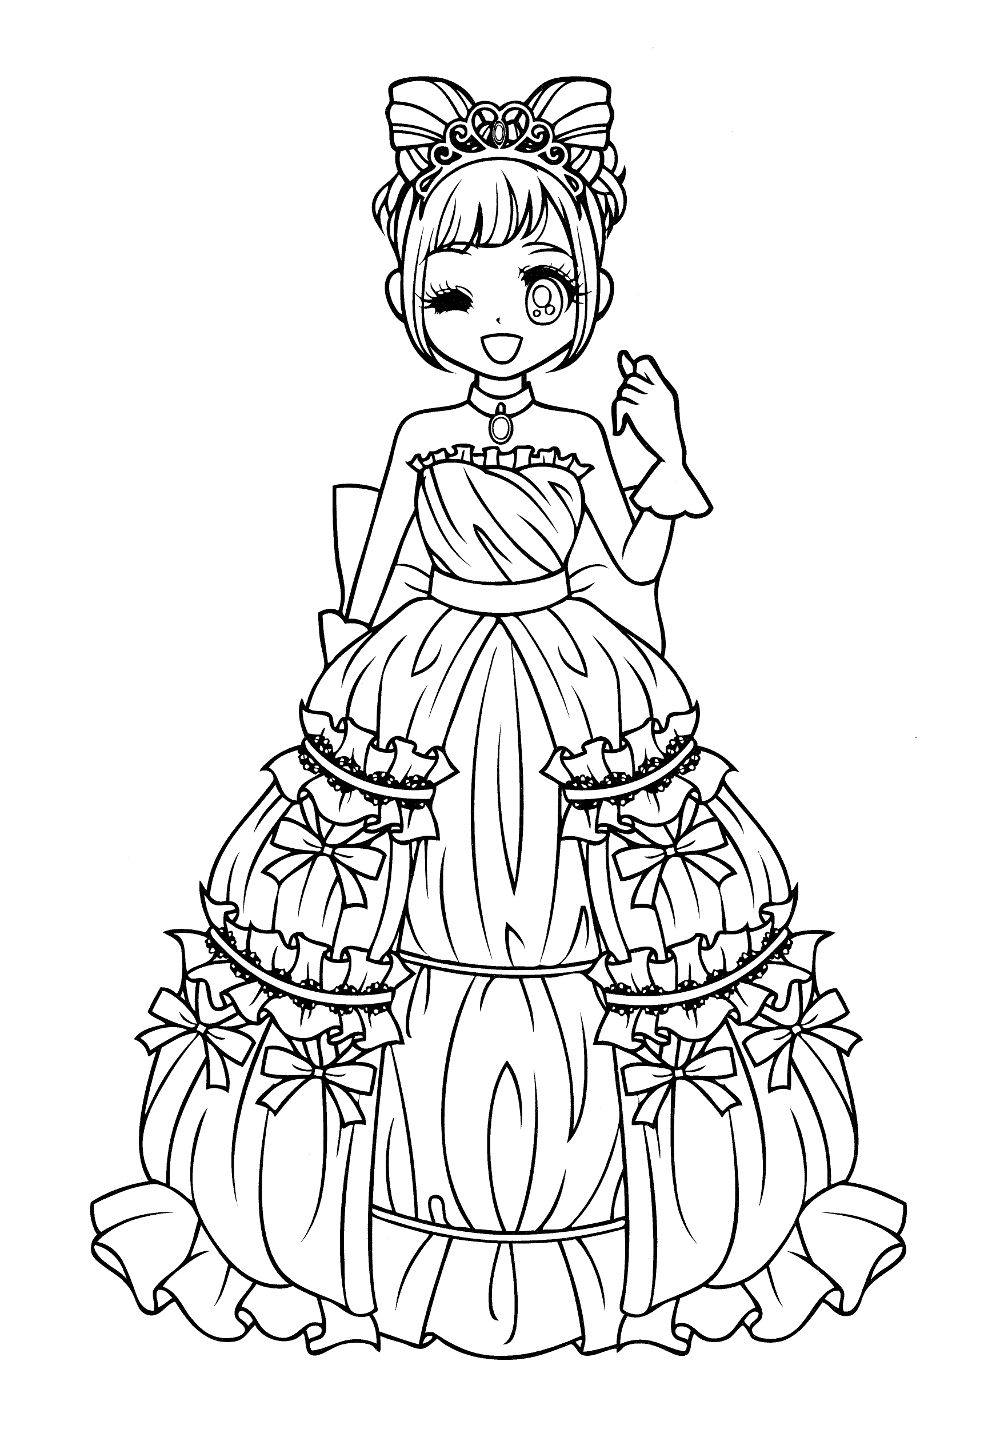 Pin von Michelle auf Anime coloring pages! | Pinterest